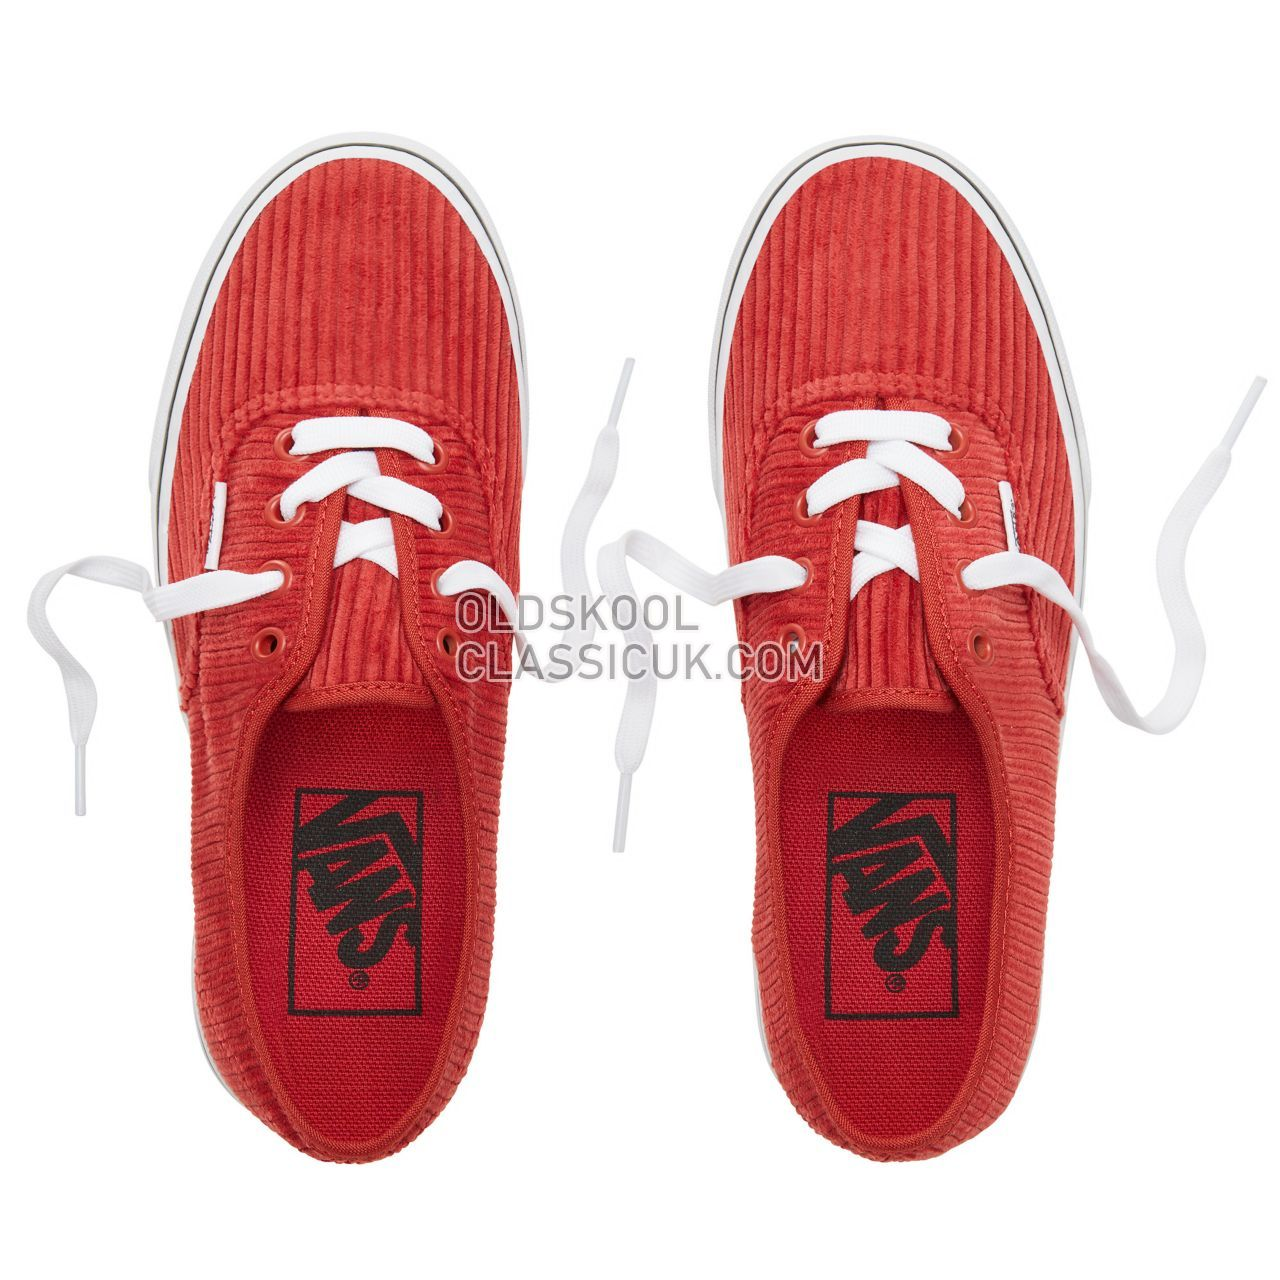 Vans Design Assembly Corduroy Authentic Sneakers Womens (Design Assembly) Bossa Nova/True White VA38EMU56 Shoes